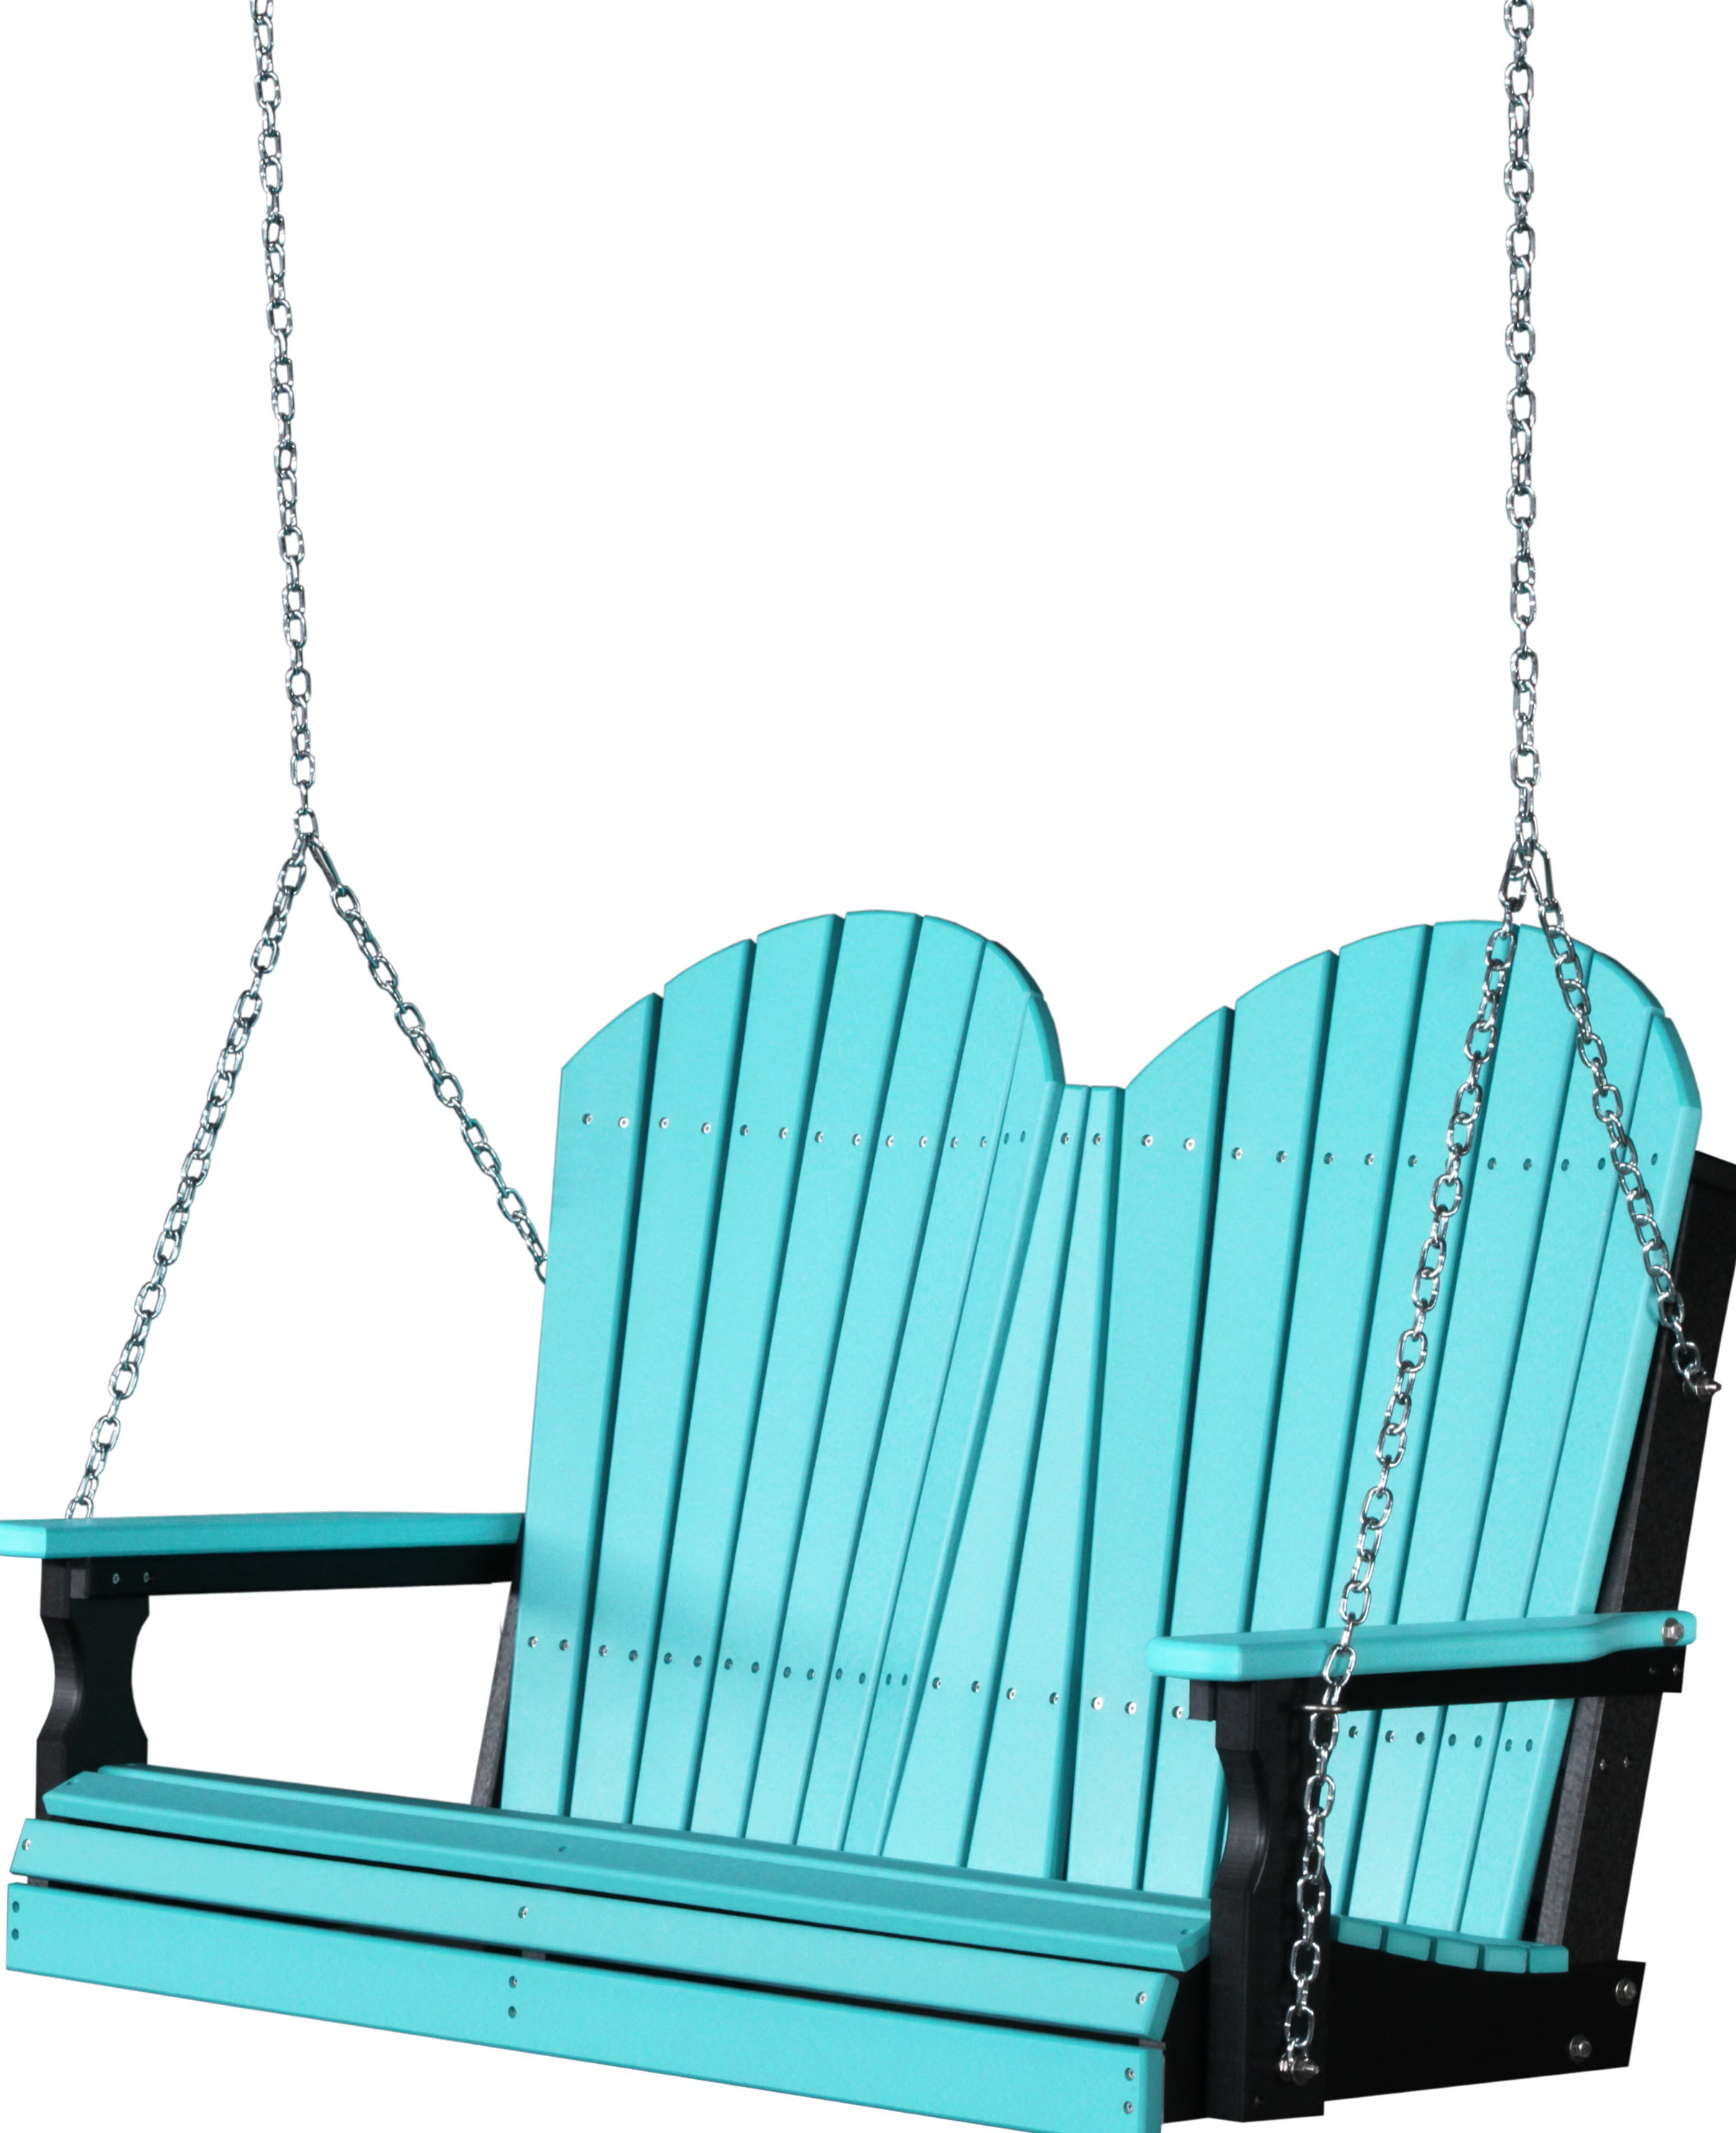 Amish Porch Swings Columbus Ohio Home Design Ideas